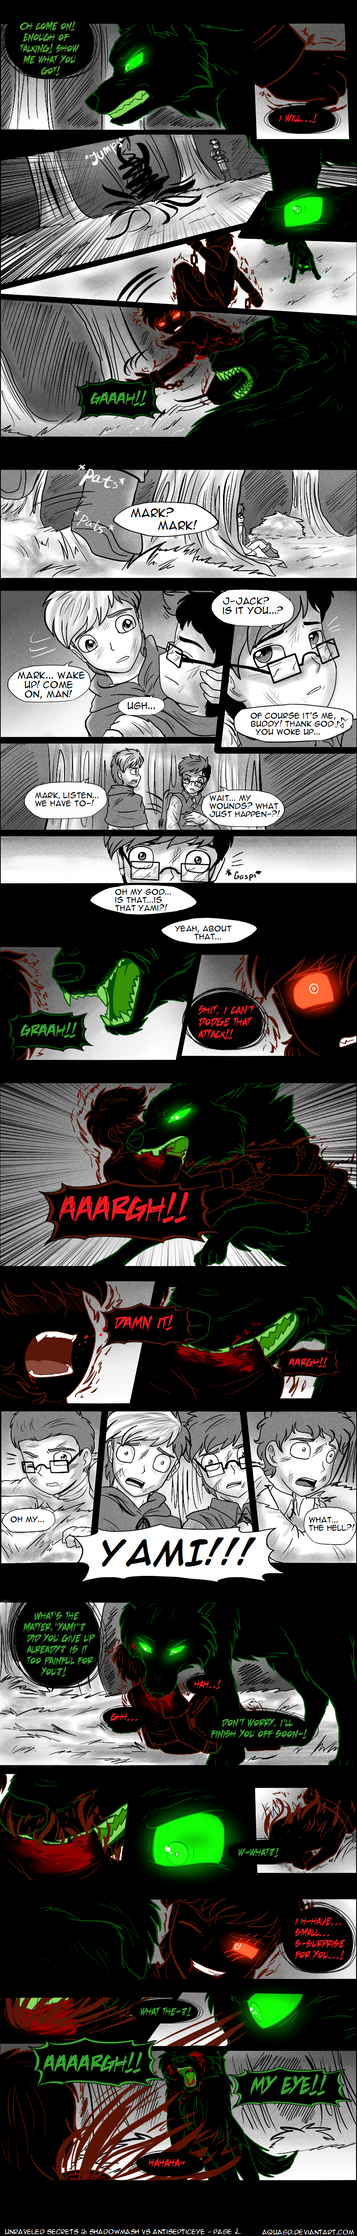 .: US 2: Shadowmash vs Antisepticeye - page 2 :. by AquaGD